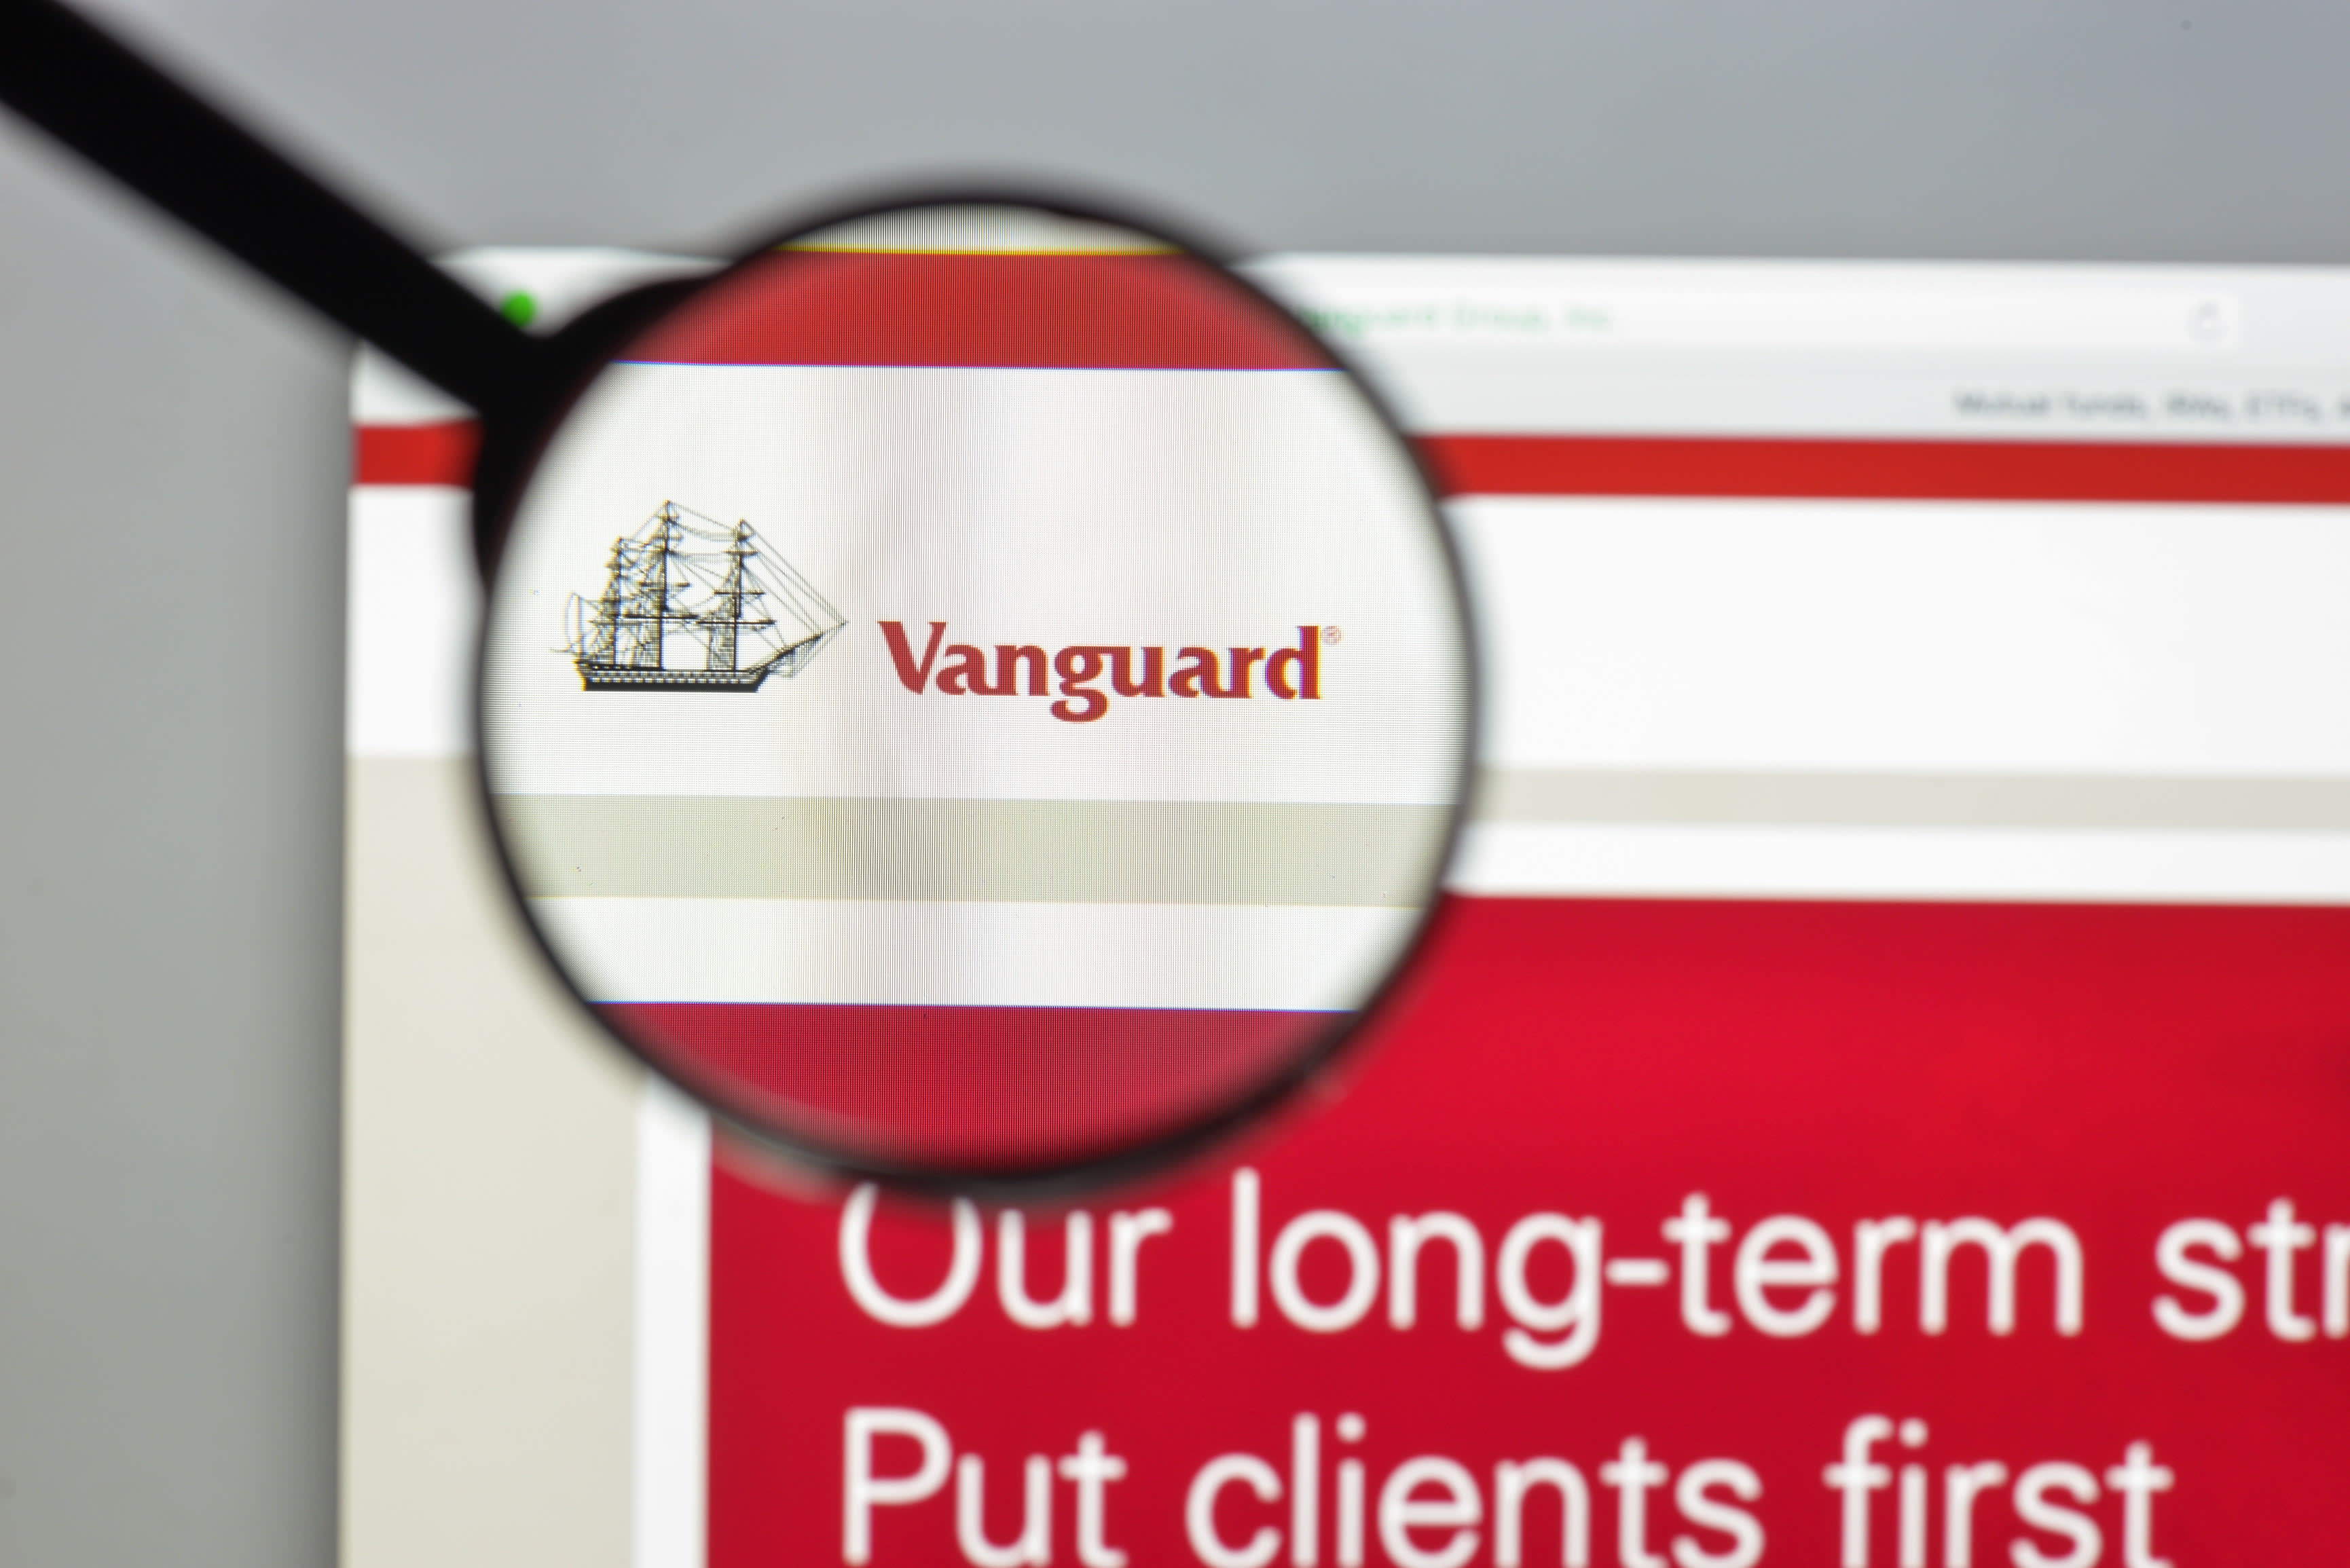 Vanguard launches advice service with 0.79% 'all-in' fee